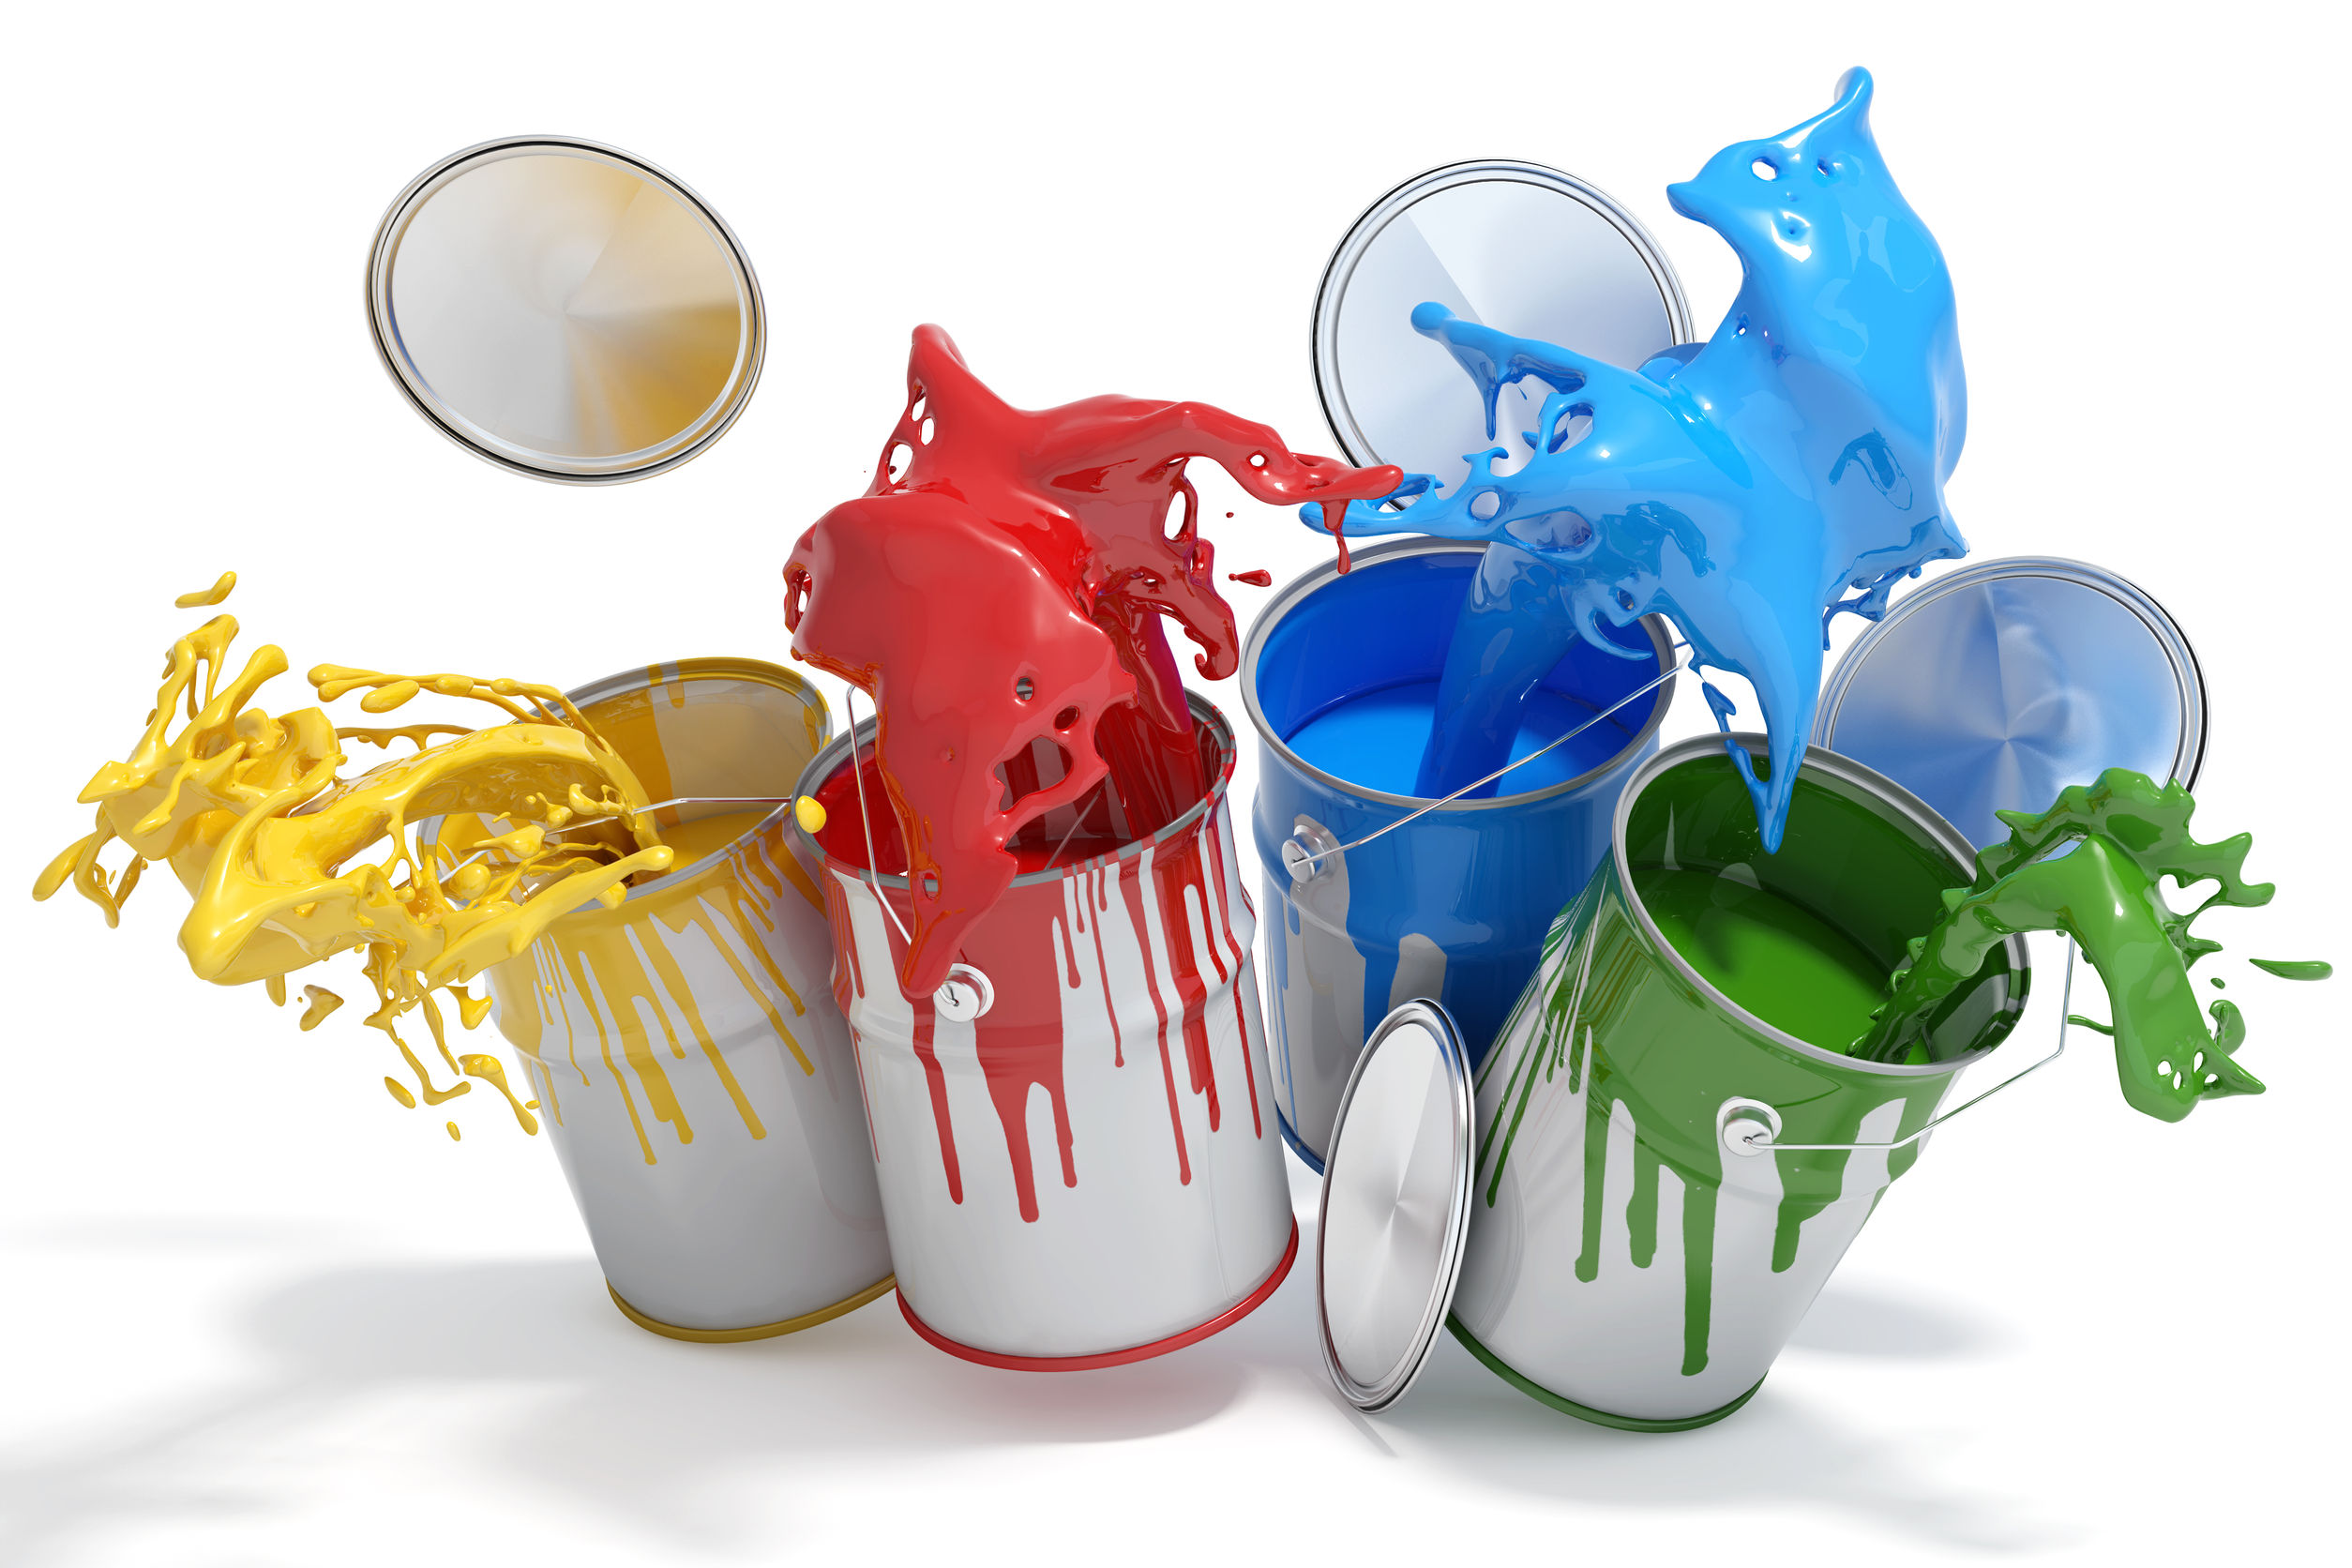 How To Dispose Of House Paint